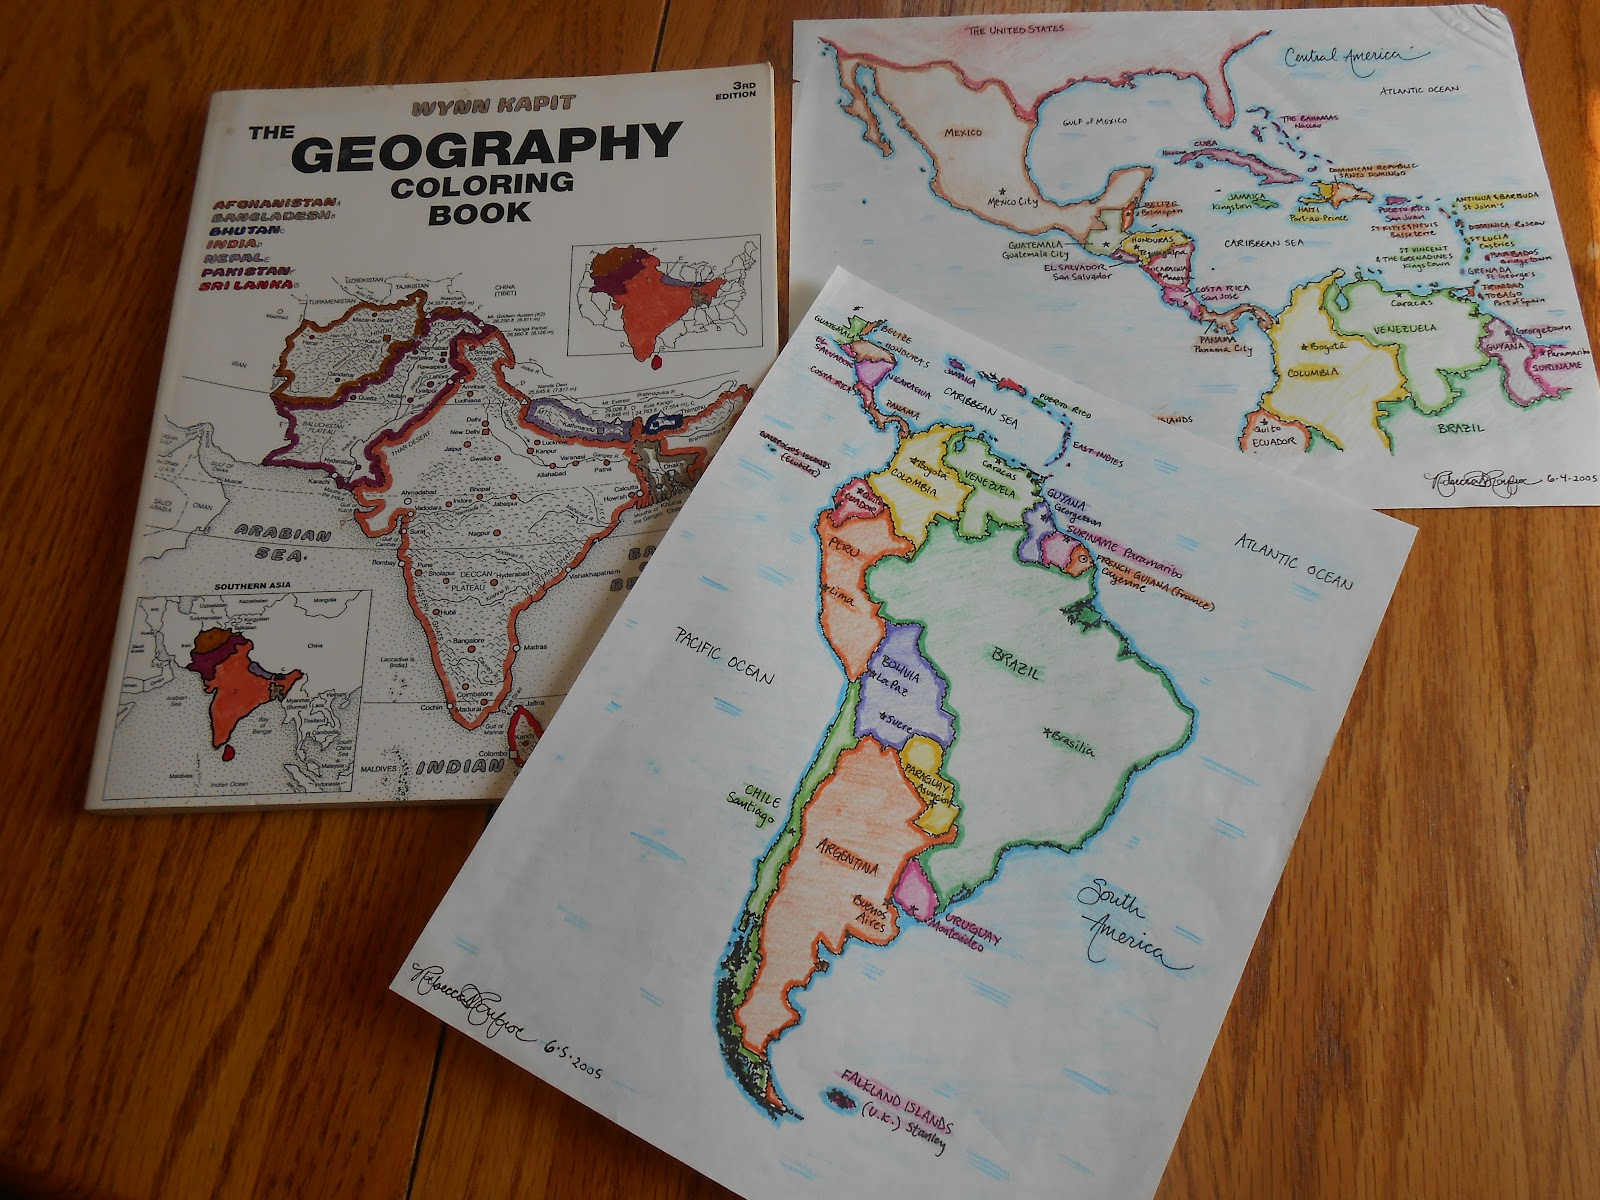 ebook the geography coloring book nd edition view images - Geography Coloring Book